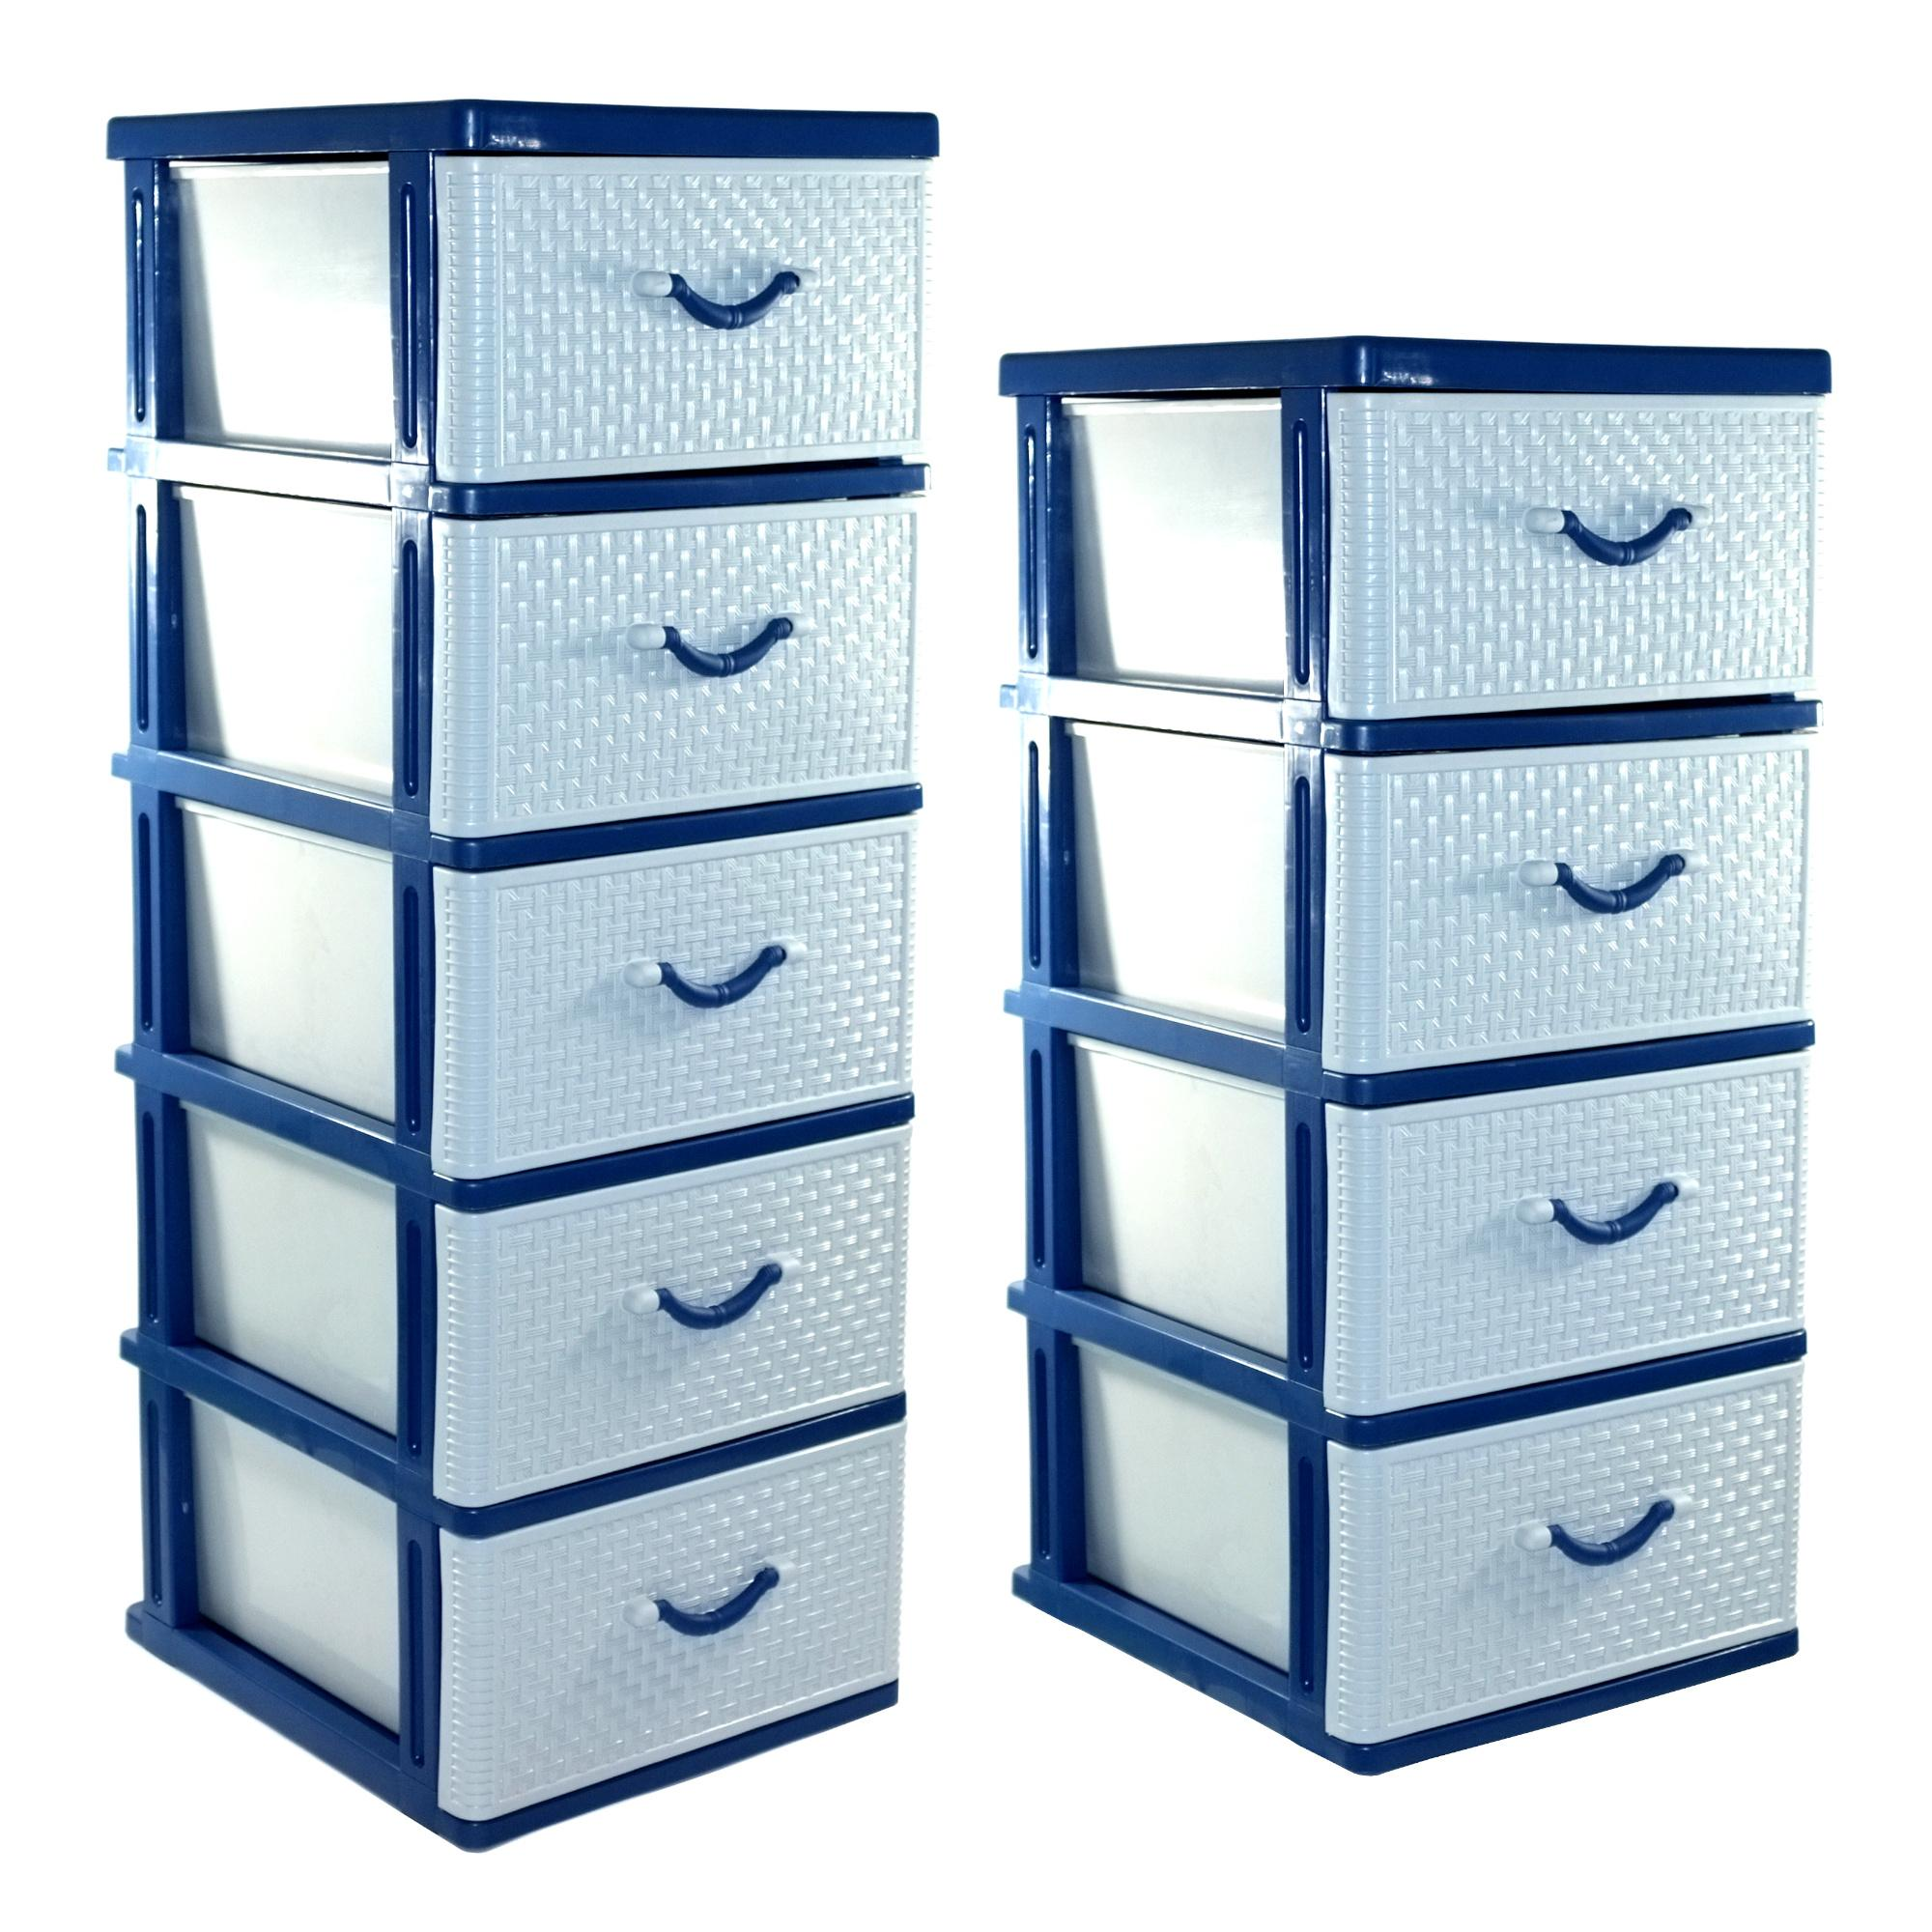 Drawer Cabinet Set of 4 Tier / 5 Tier / home laundry room office storage organizer stocker container / Made in Thailand